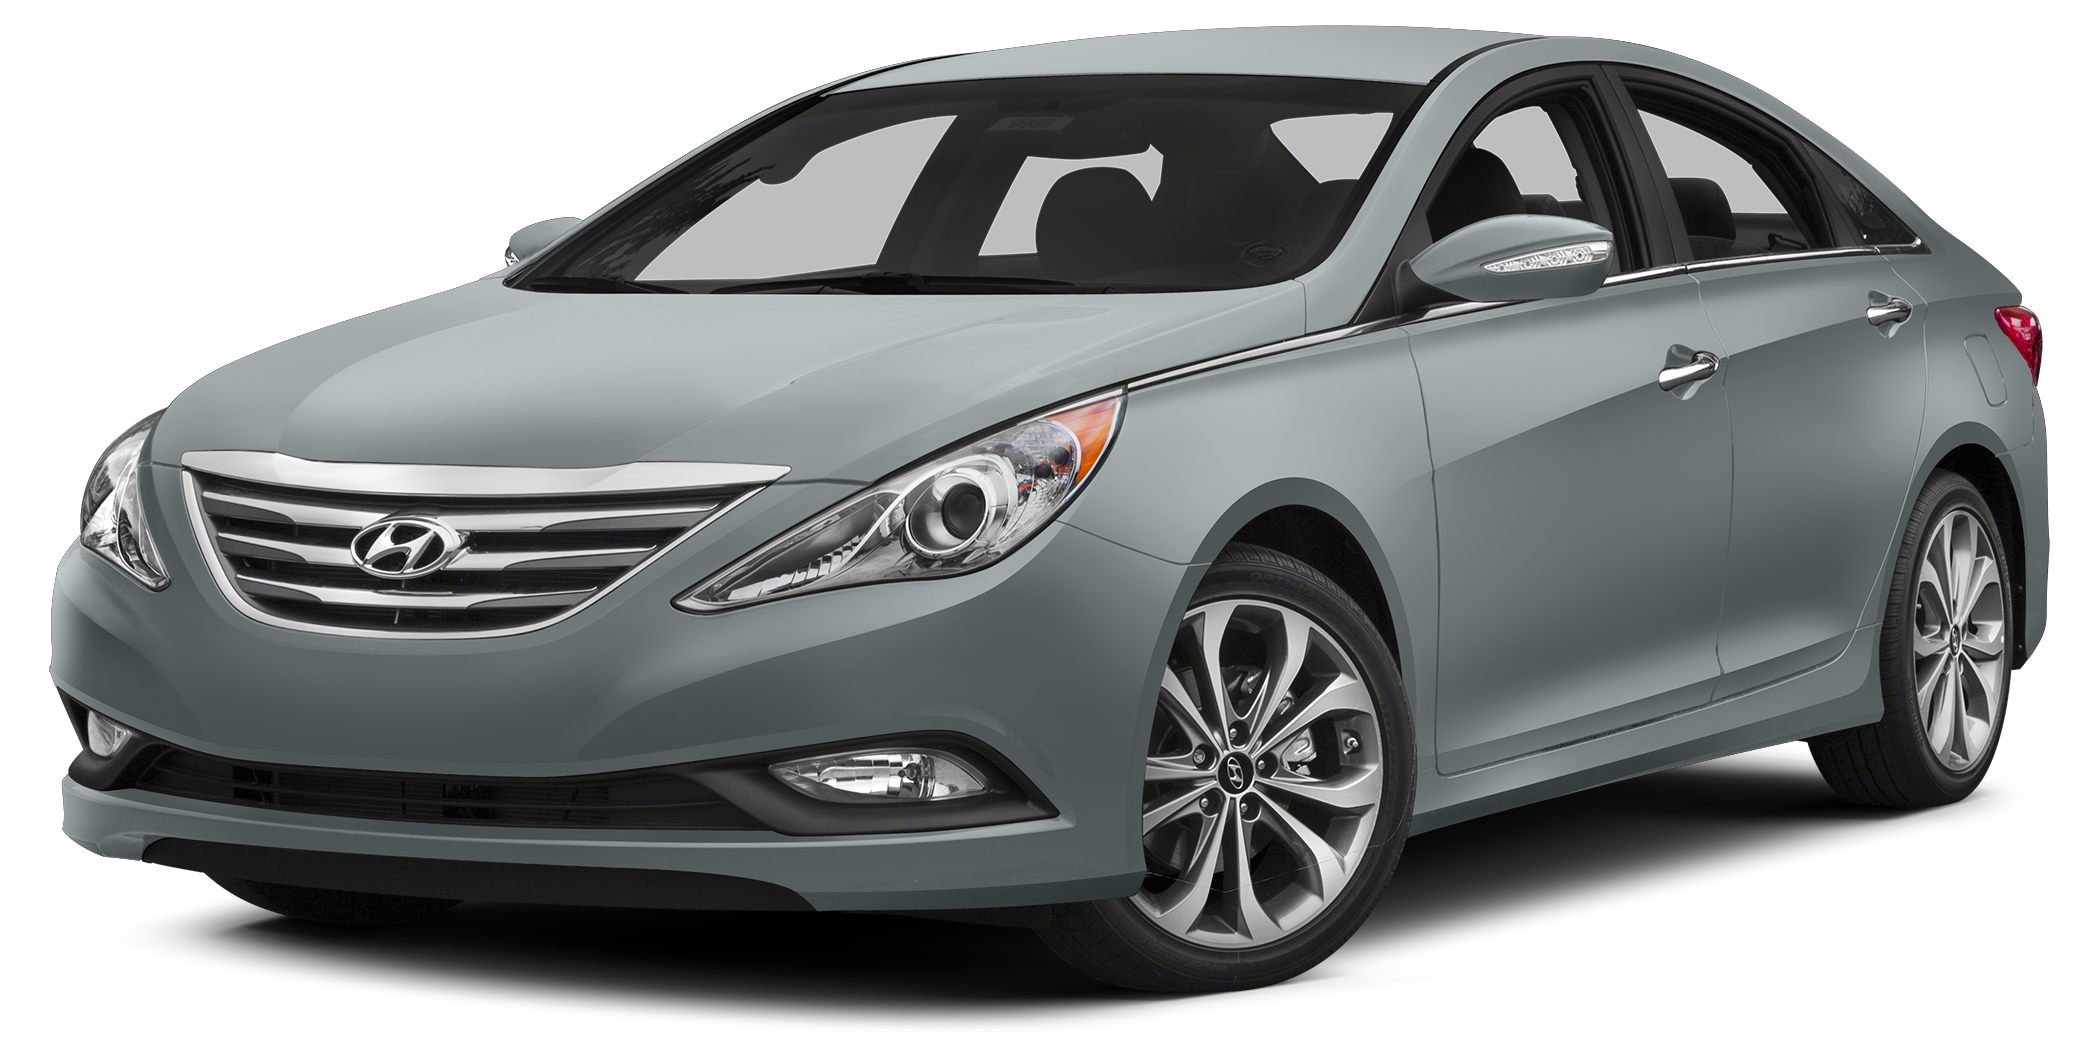 2014 Hyundai Sonata Limited Must finance with HMFC to collect all and full discounts Price applie